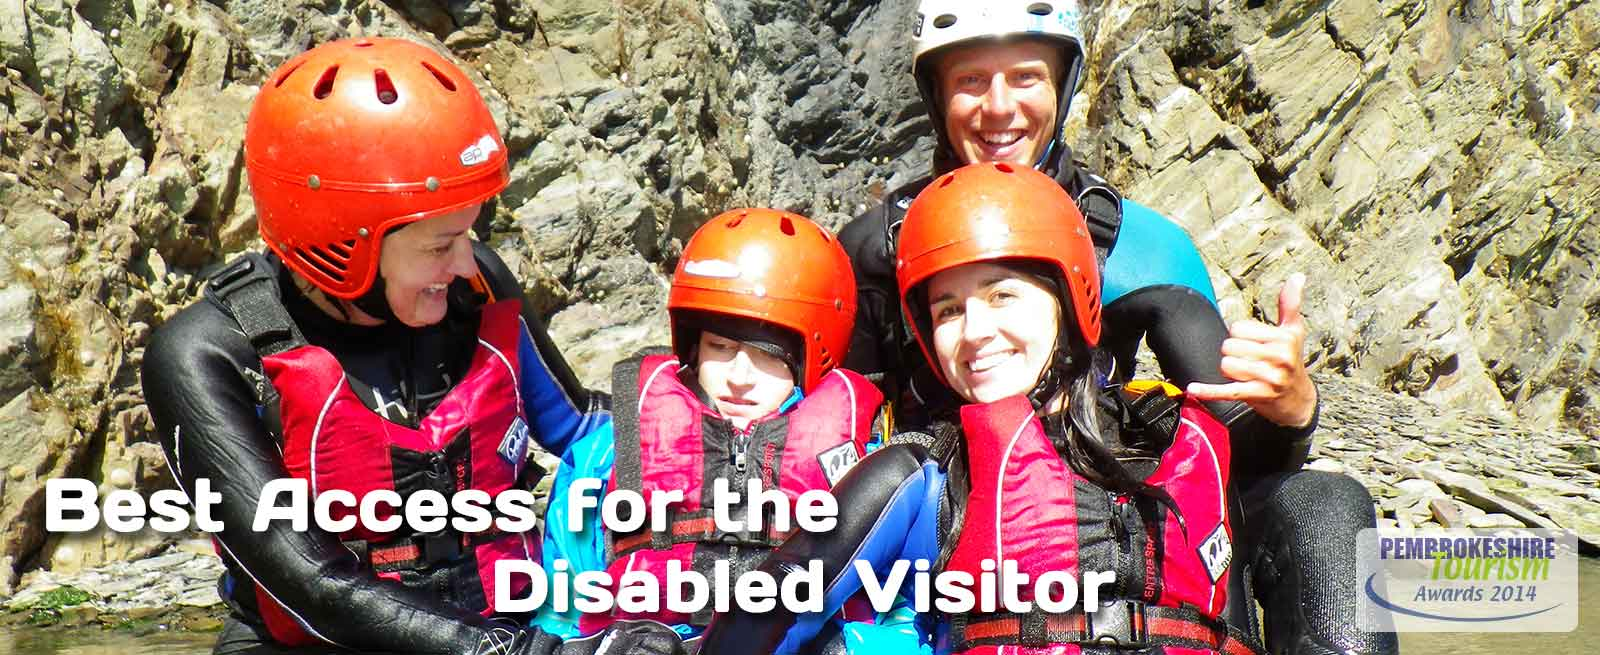 Celtic Quest Coasteering won Best Access for the Disabled Visitor - Pembrokeshire Tourism Awards 2014